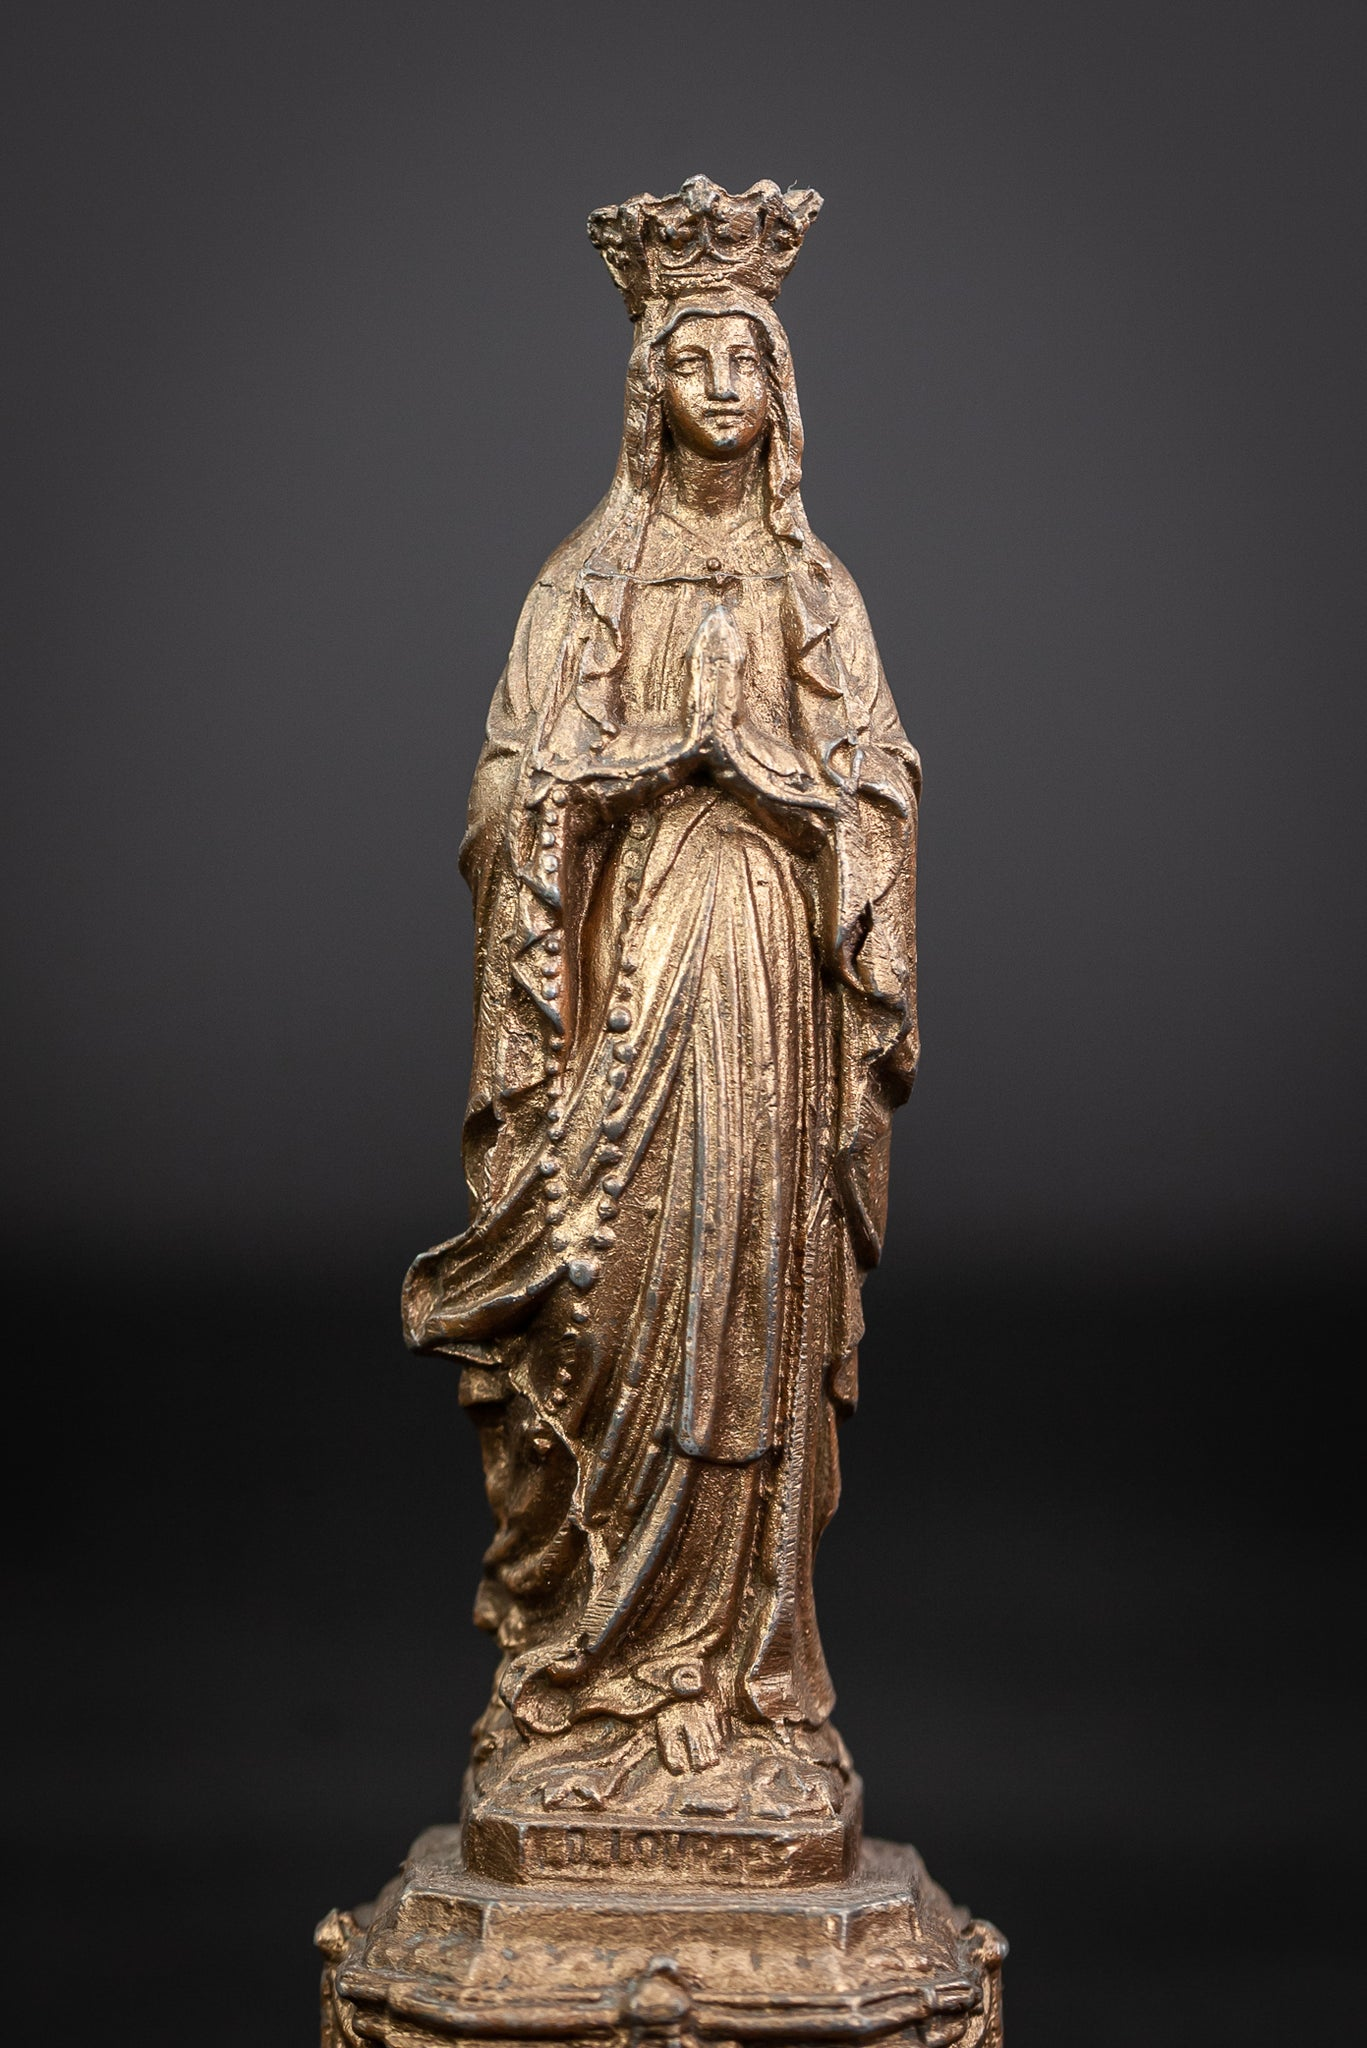 Our Lady of Lourdes Gilded Metal Figurine